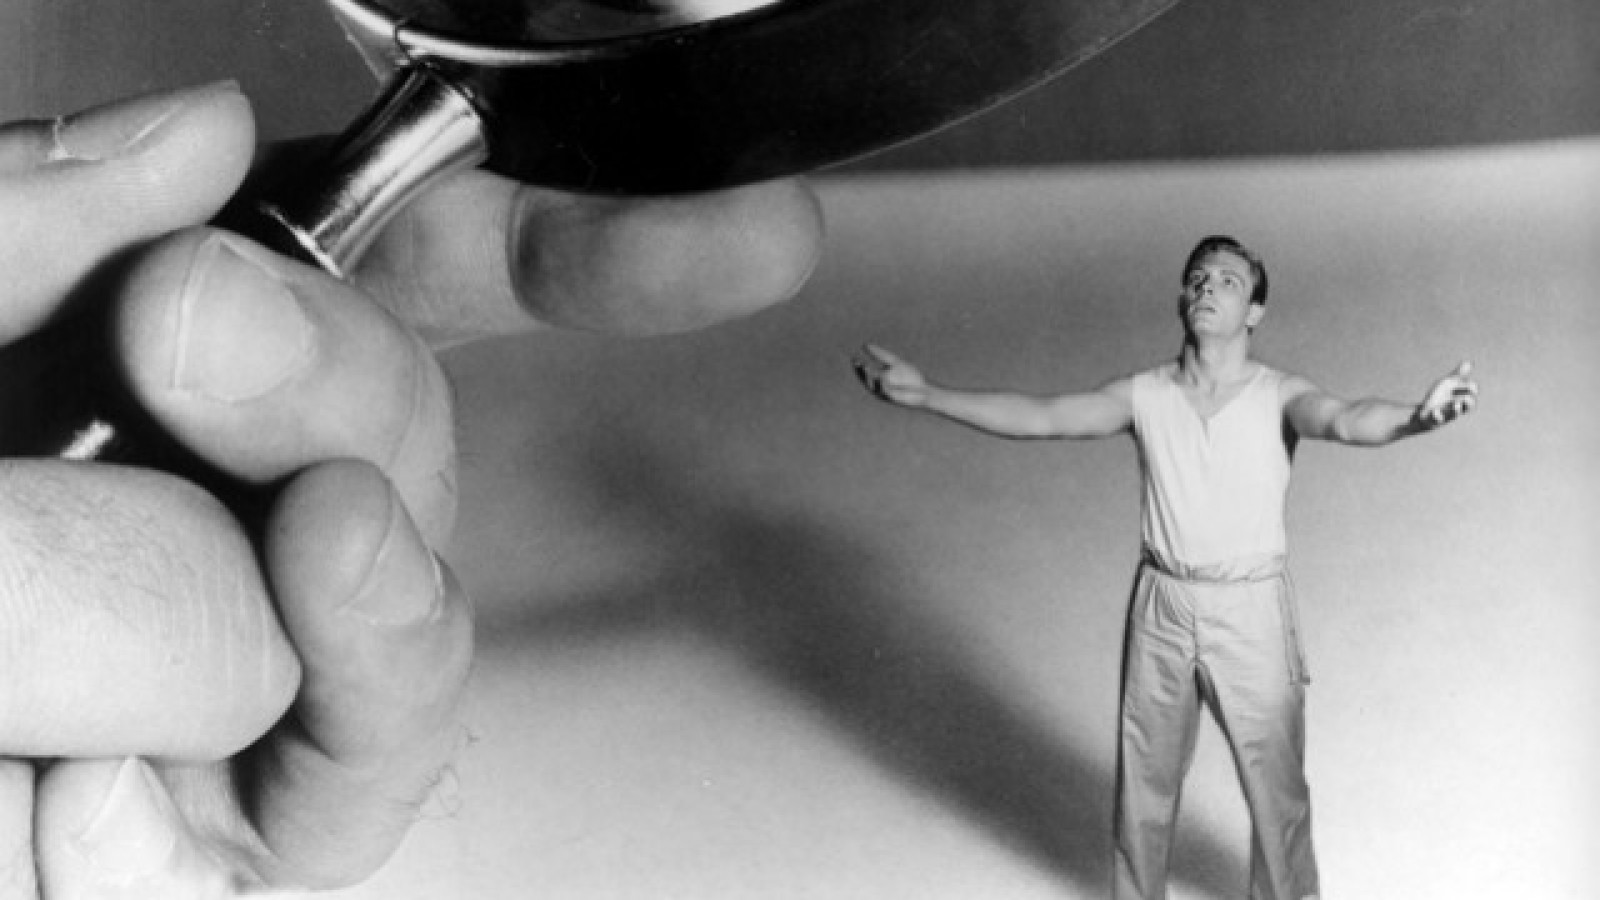 Title: INCREDIBLE SHRINKING MAN, THE ¥ Pers: WILLIAMS, GRANT ¥ Year: 1956 ¥ Dir: ARNOLD, JACK ¥ Ref: INC007BL ¥ Credit: [ UNIVERSAL / THE KOBAL COLLECTION ]